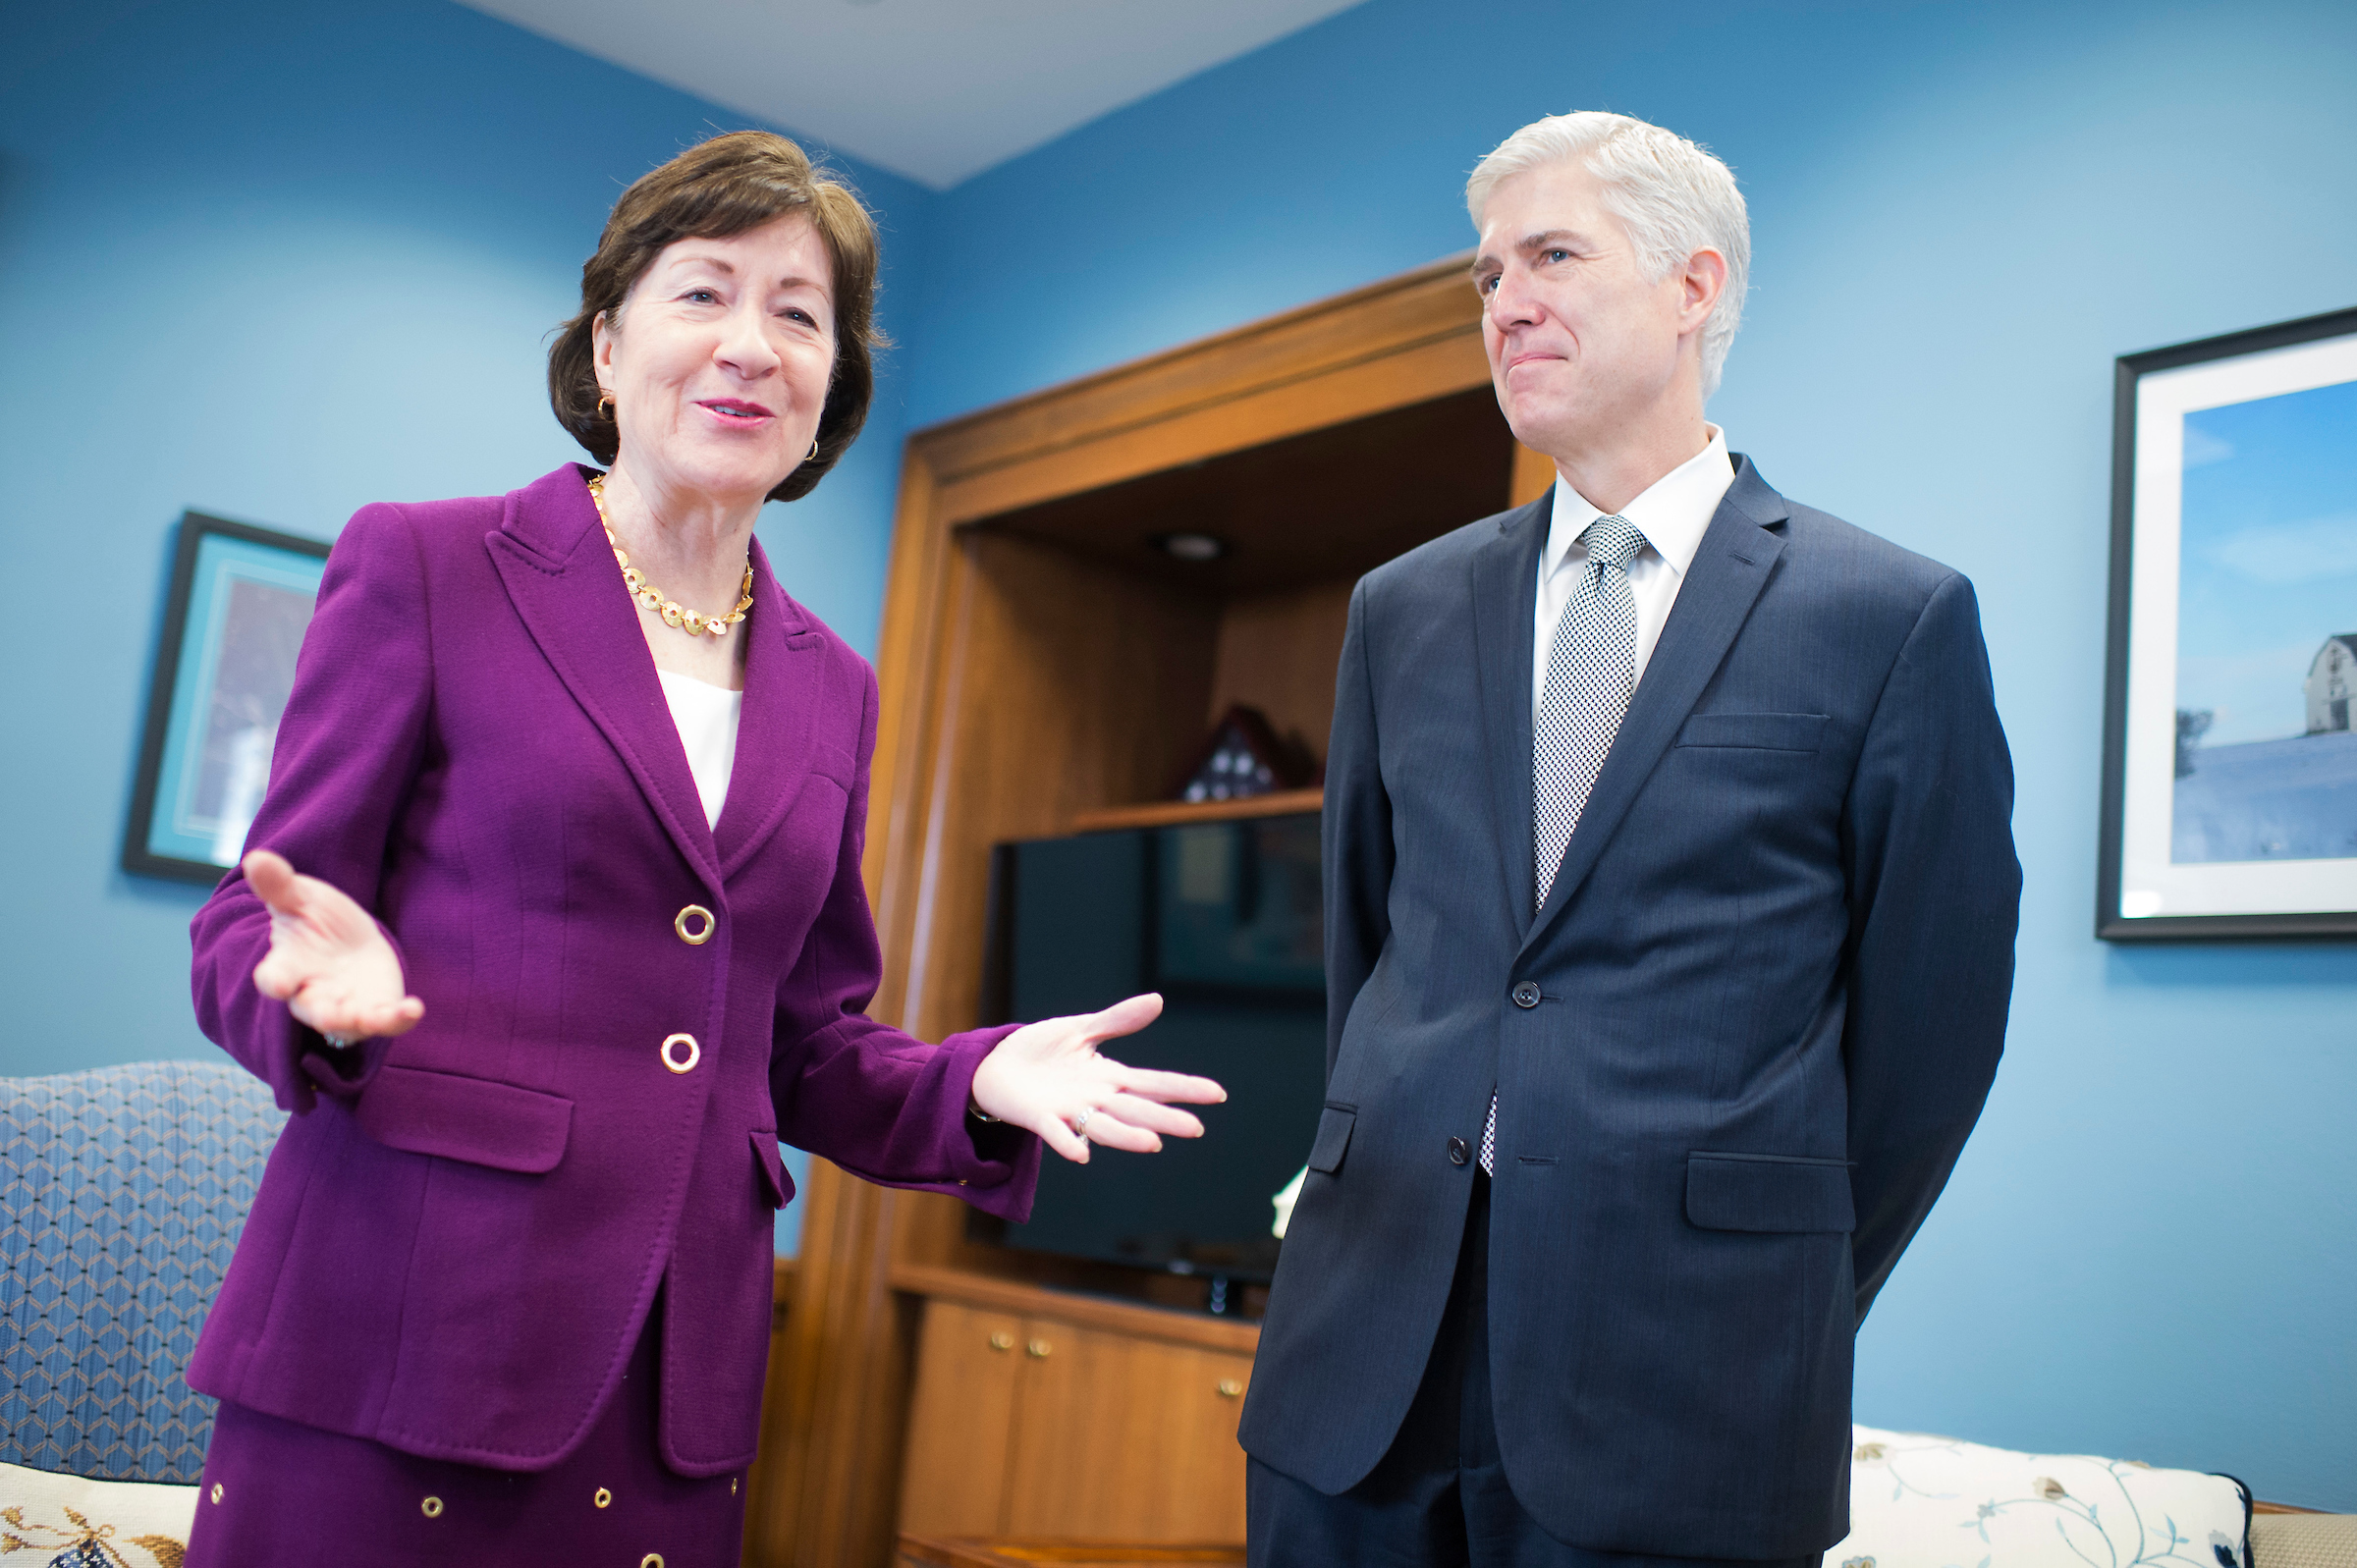 UNITED STATES - FEBRUARY 09: Neil Gorsuch, Supreme Court Justice nominee, meets with Sen. Susan Collins, R-Maine, in her Dirksen Building office, February 9, 2017. (Photo By Tom Williams/CQ Roll Call)